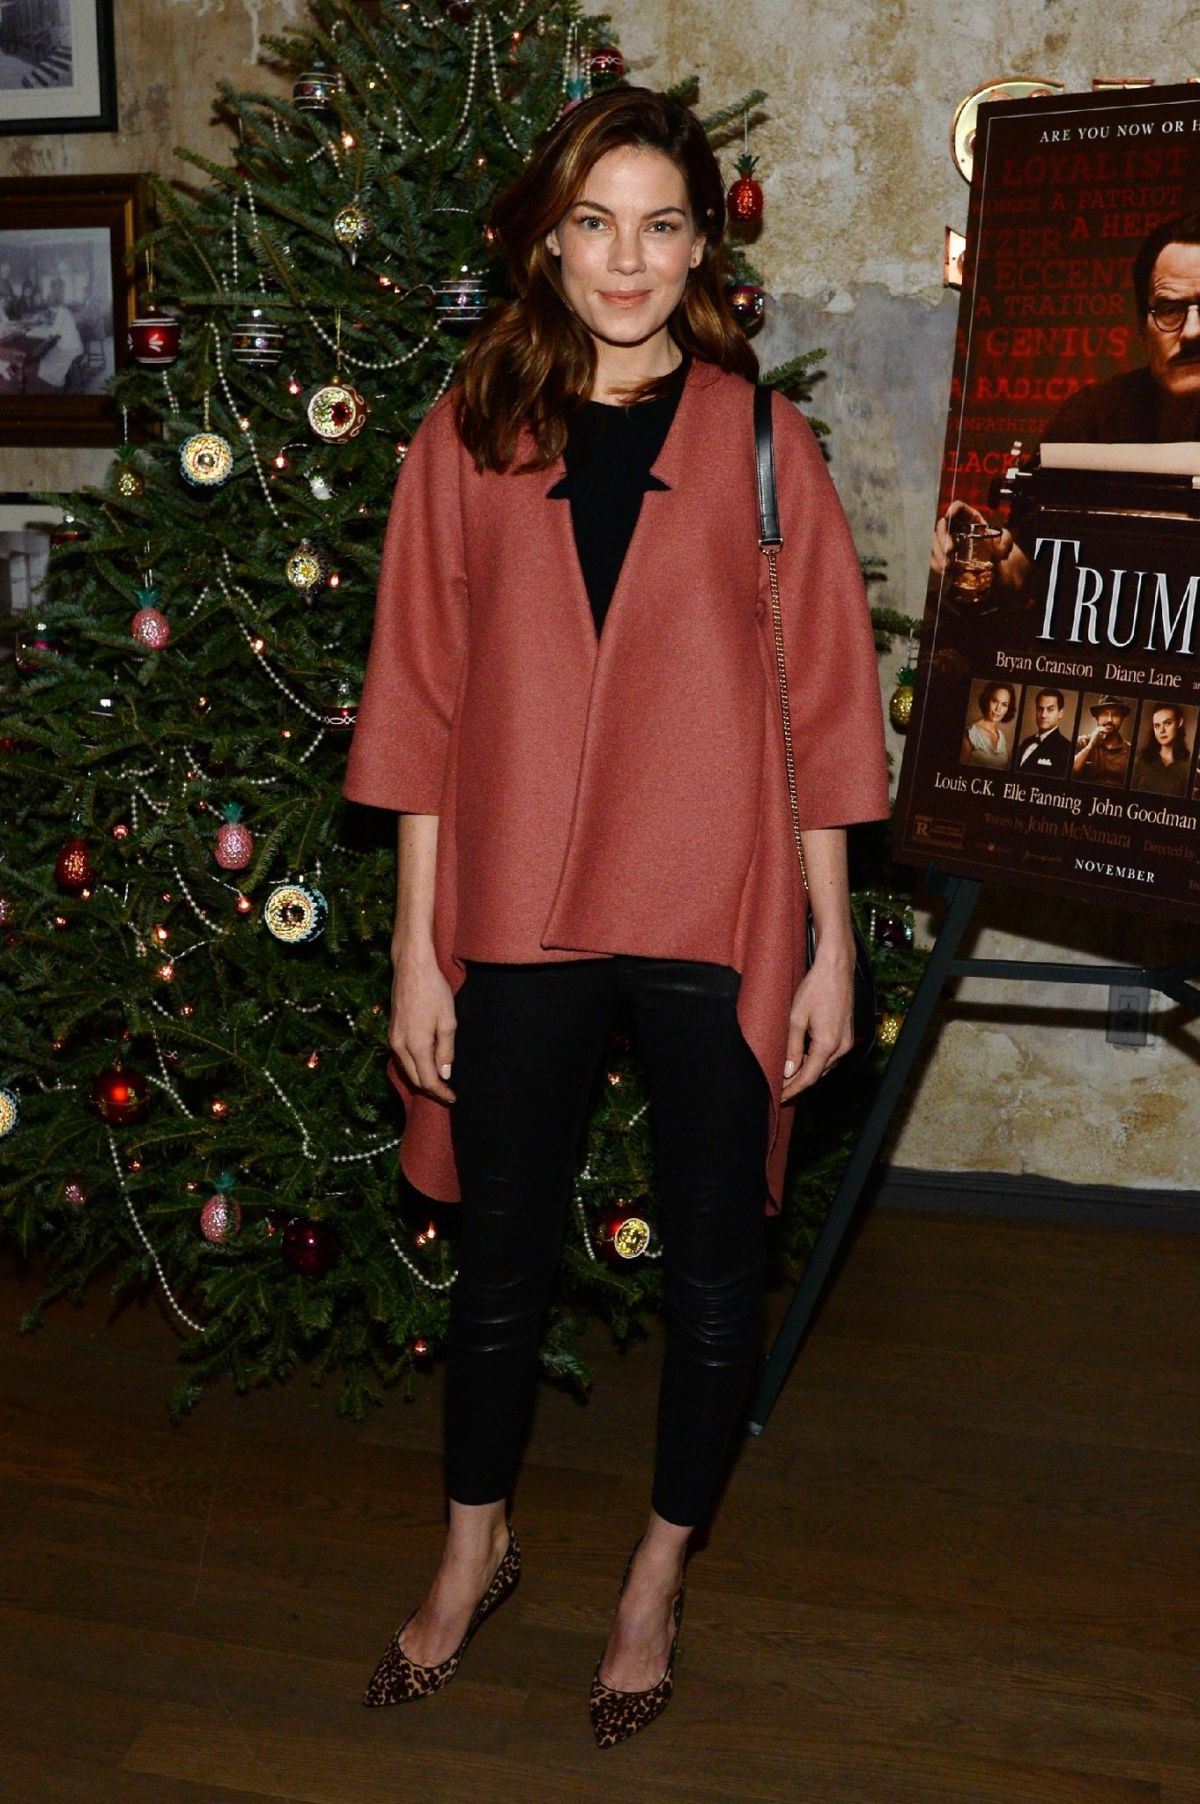 MICHELLE MONAGHAN at a Celebration for Bryan Cranston in New York 12/13/2015